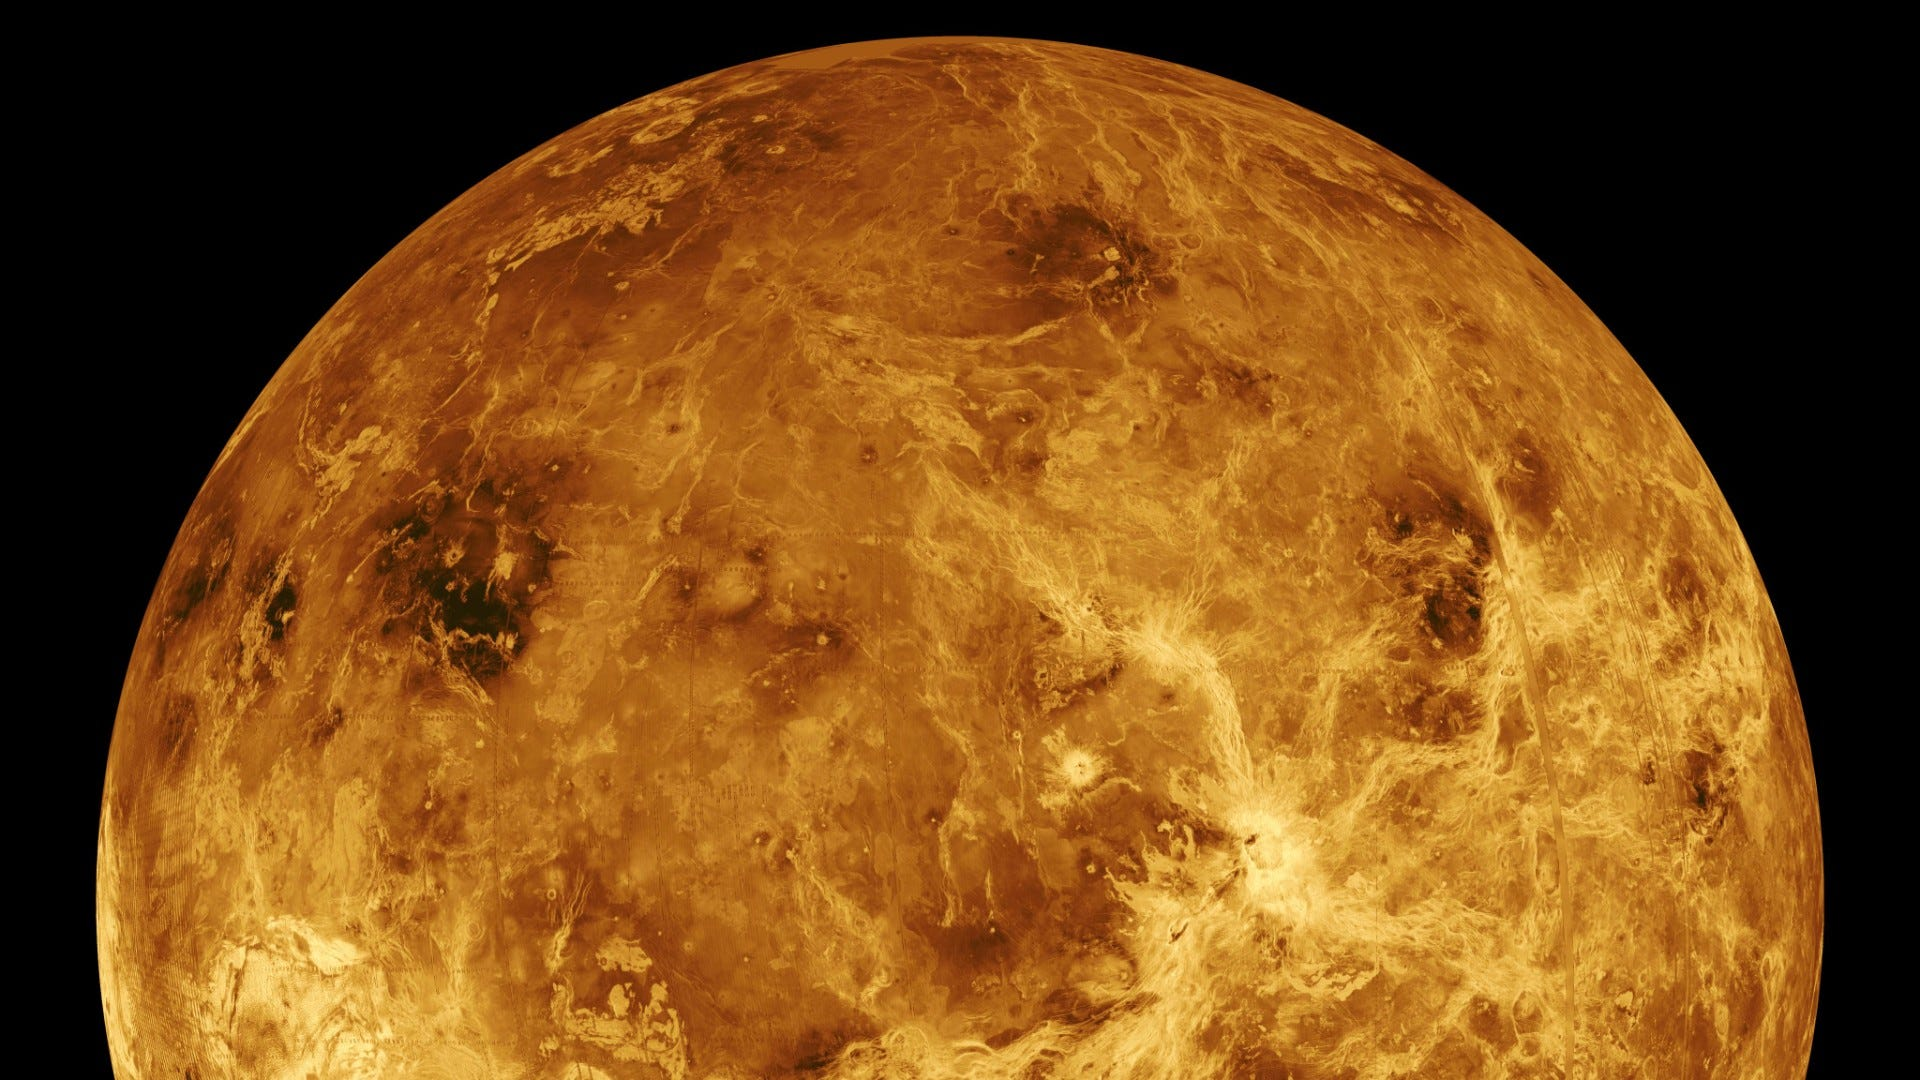 Chemical Linked to Life Found in Cloud Decks of Venus